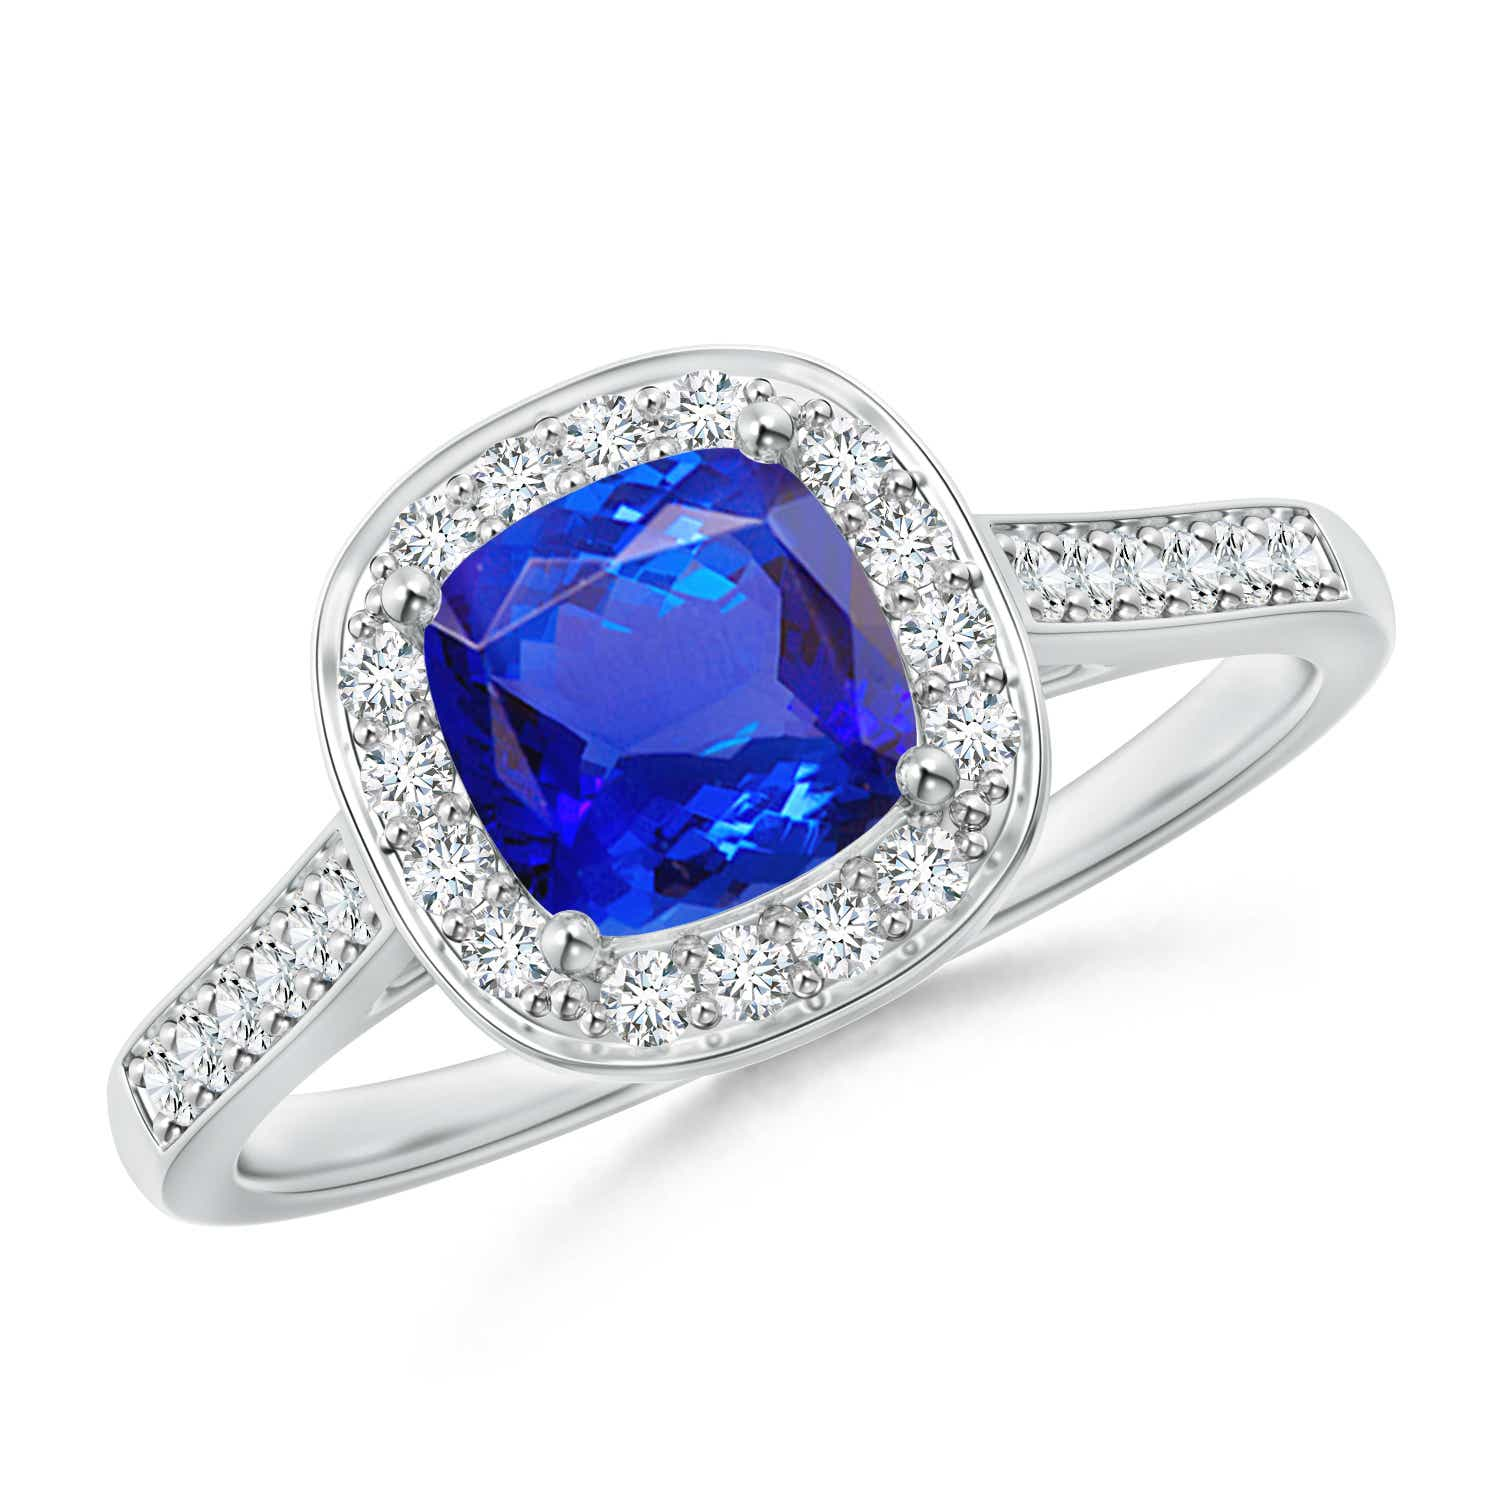 diamond bands wedding with pave tanzanite in love cushion pin round a engagement set classic halo band ring